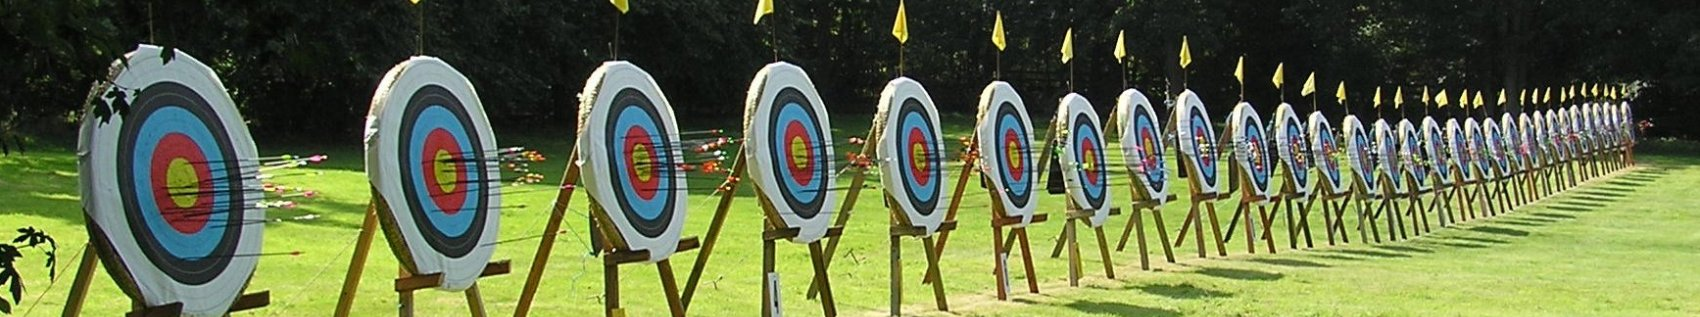 Targets In A Row